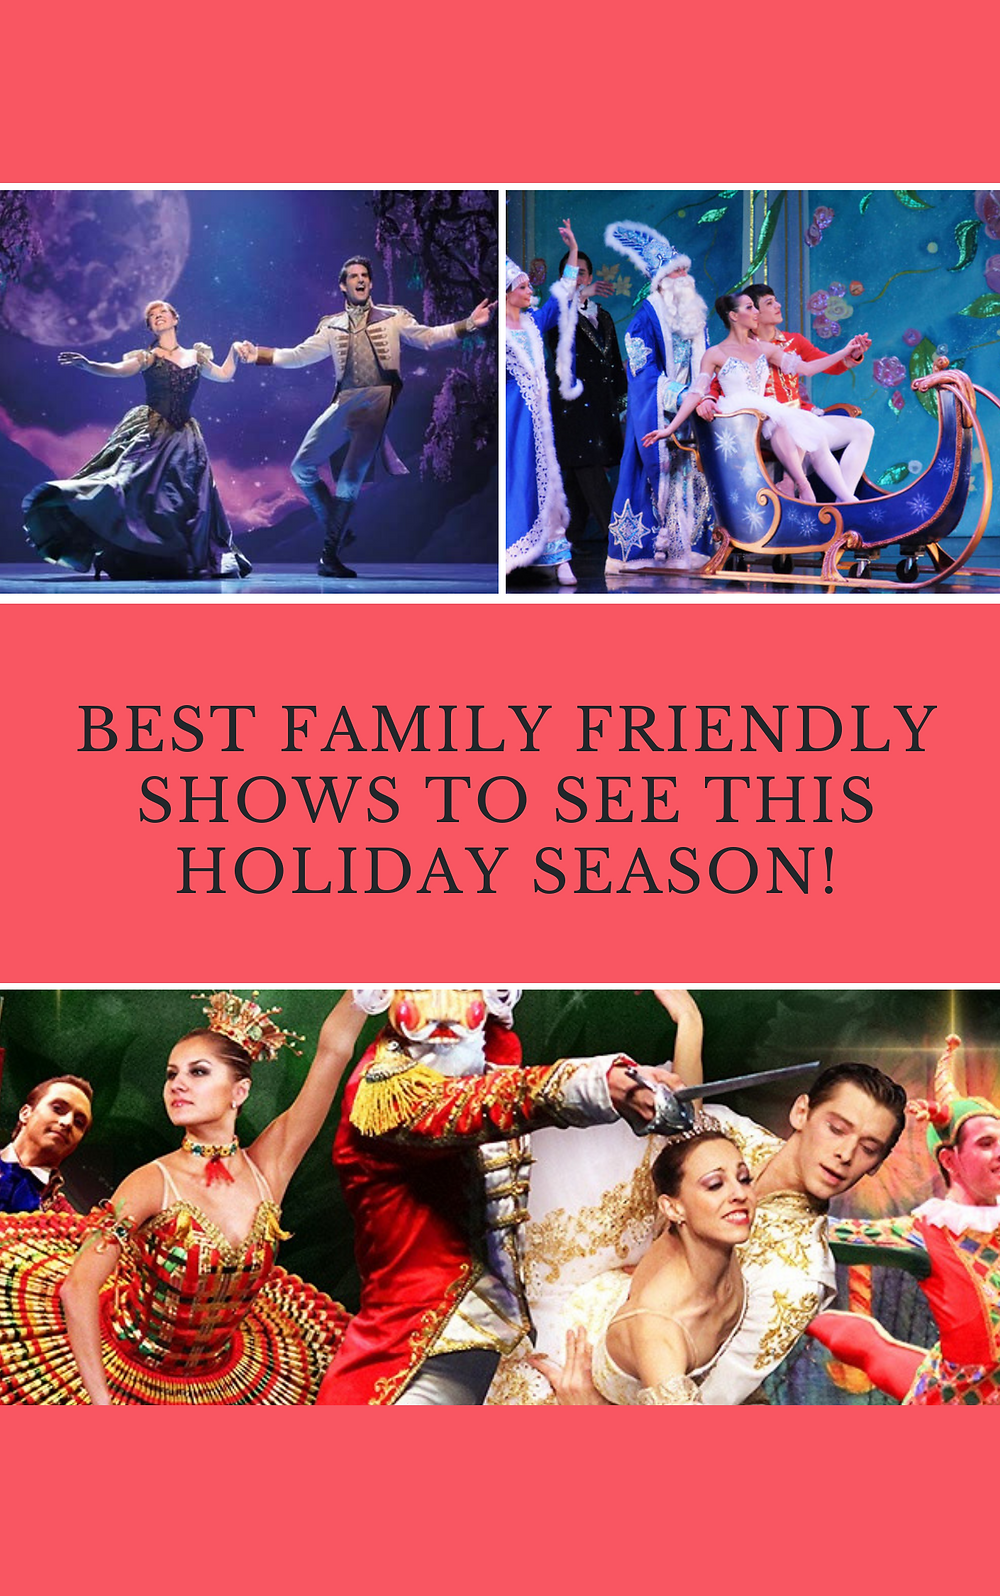 best holiday shows 2019 for families